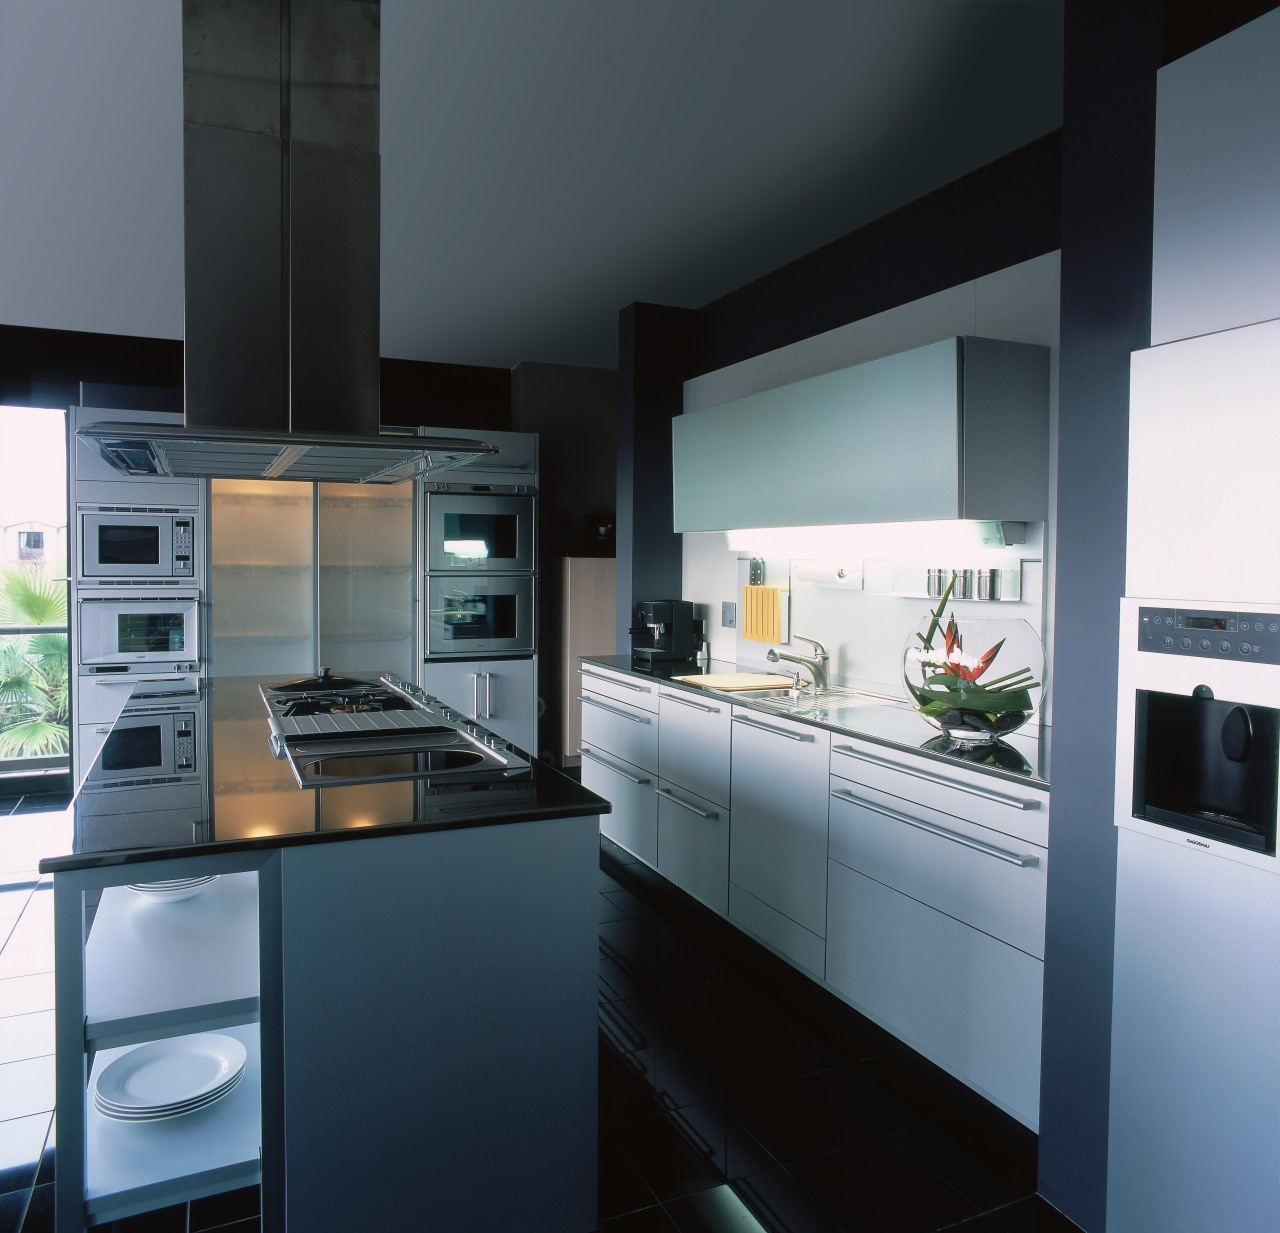 View of this contemporary kitchen countertop, cuisine classique, home appliance, interior design, kitchen, kitchen appliance, black, gray